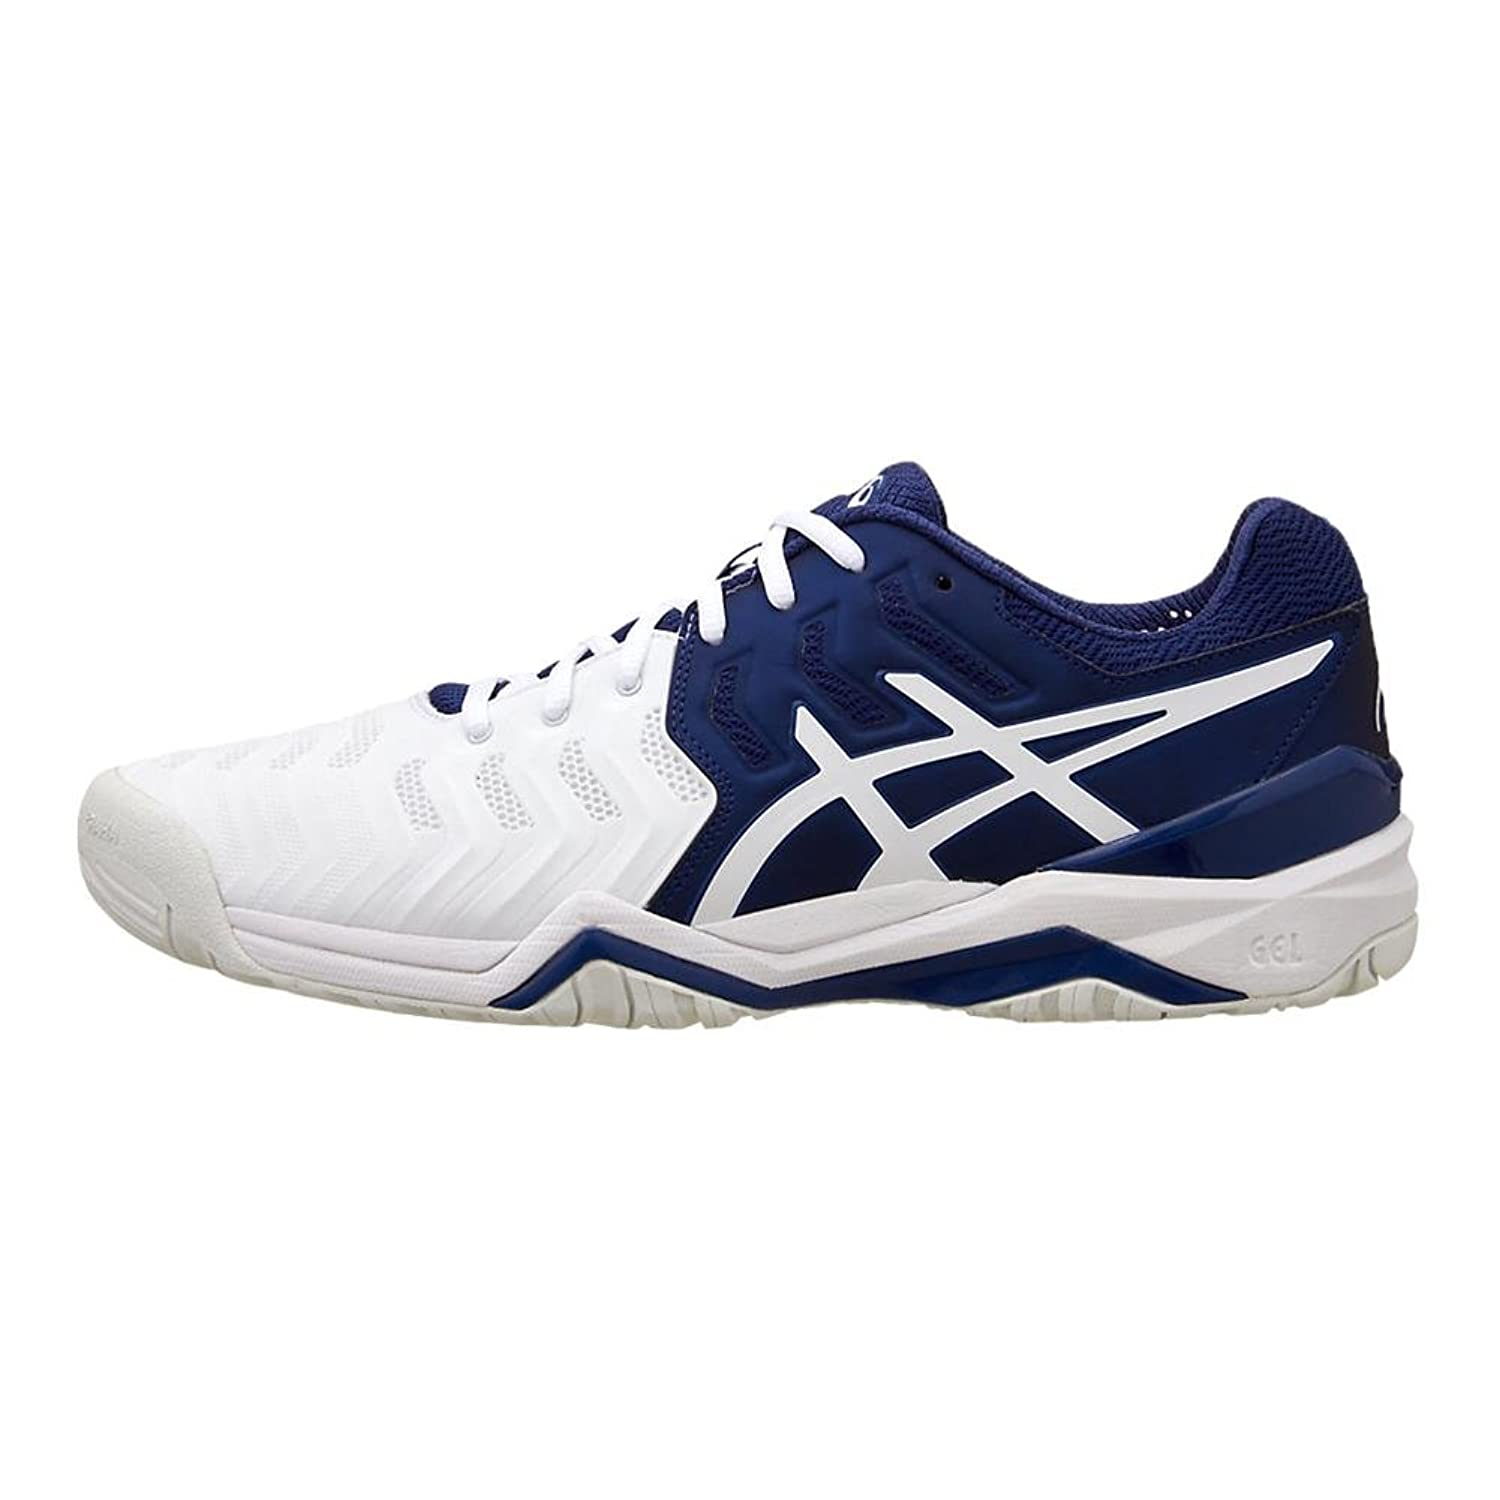 Amazon.com | ASICS Gel Resolution 7 Novak Djokovic Mens Tennis Shoe |  Tennis & Racquet Sports